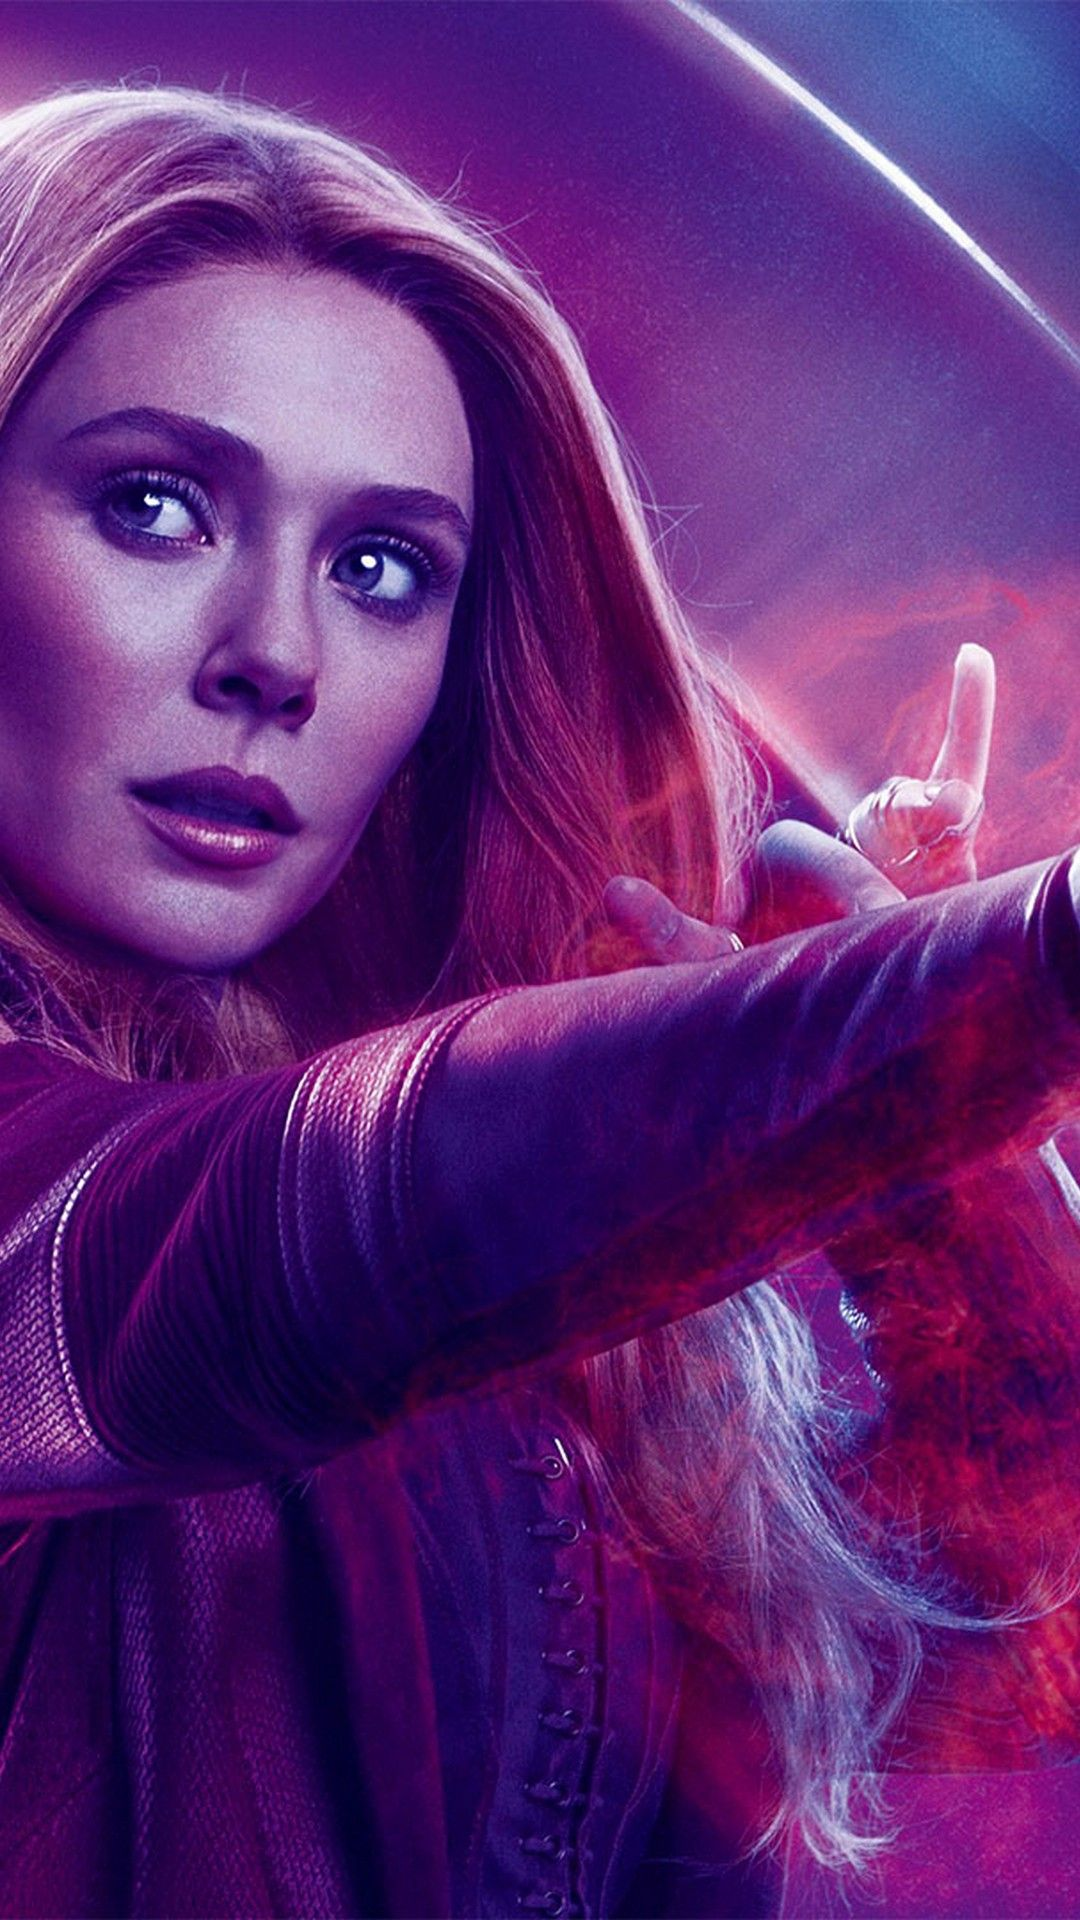 Scarlet Witch Avengers Endgame iPhone Wallpaper Best